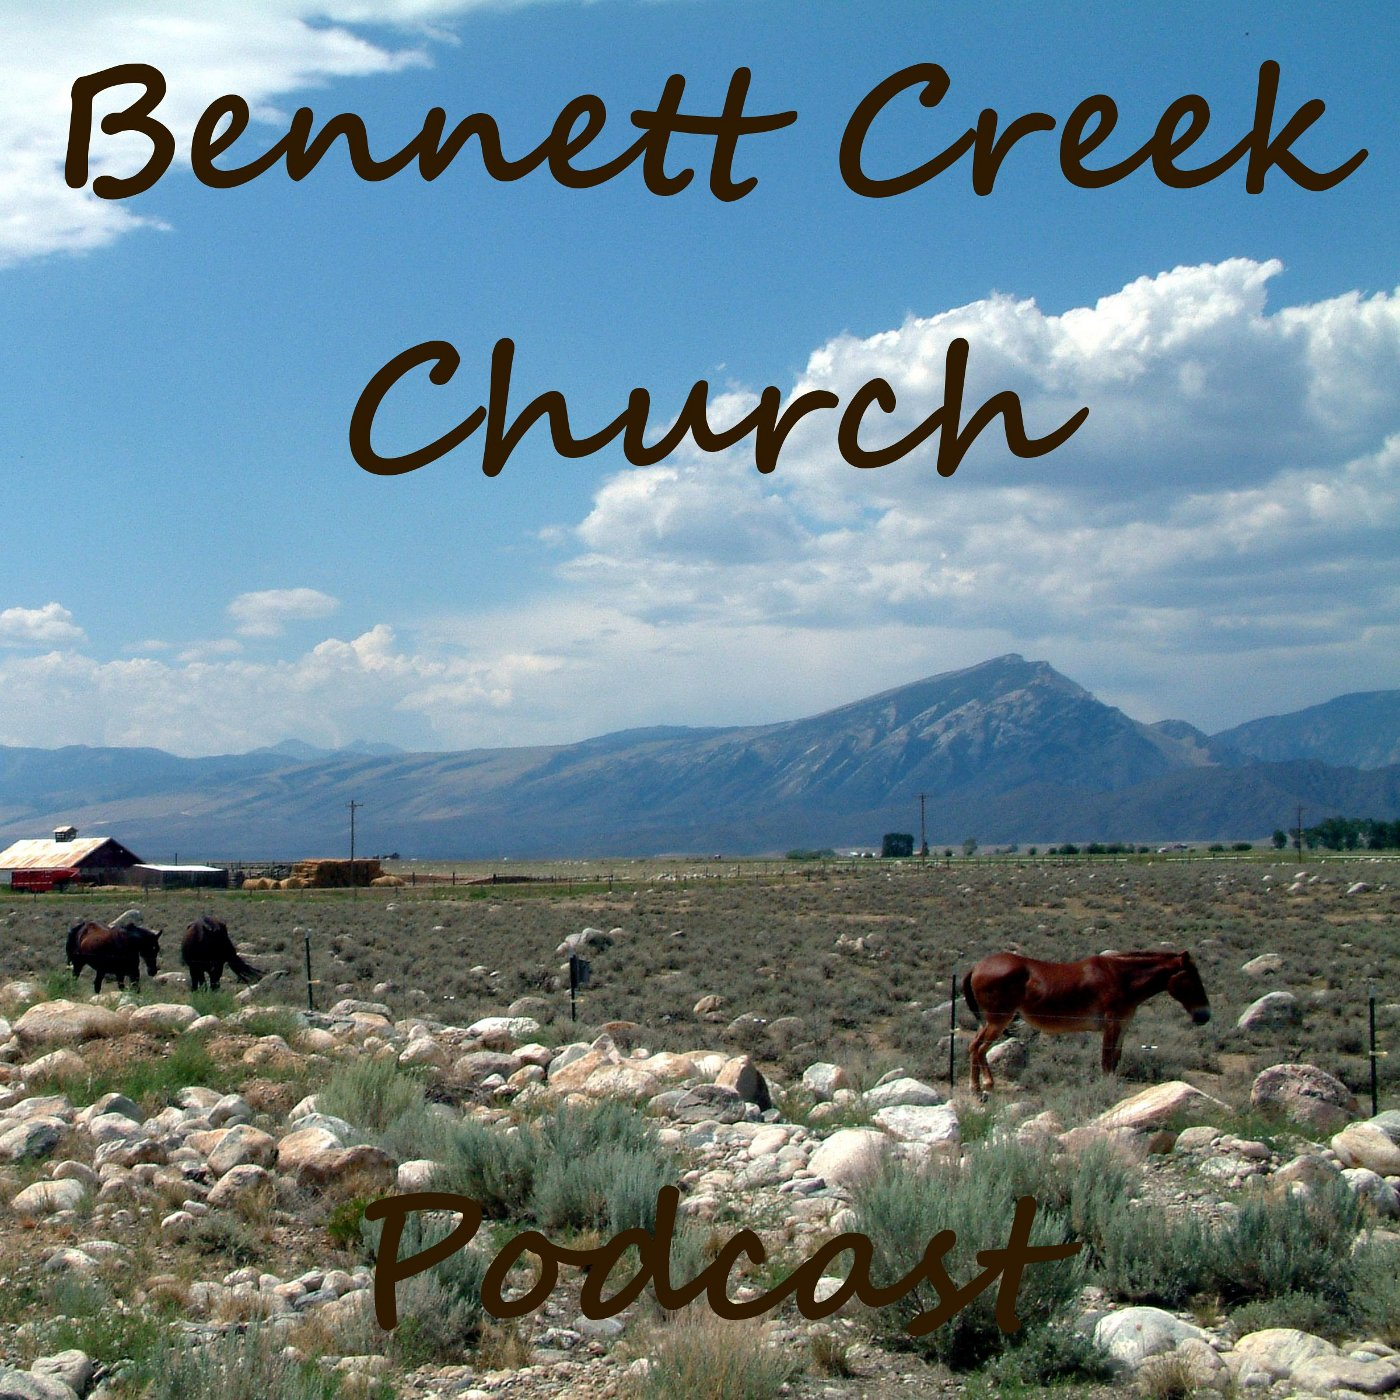 Bennett Creek Church